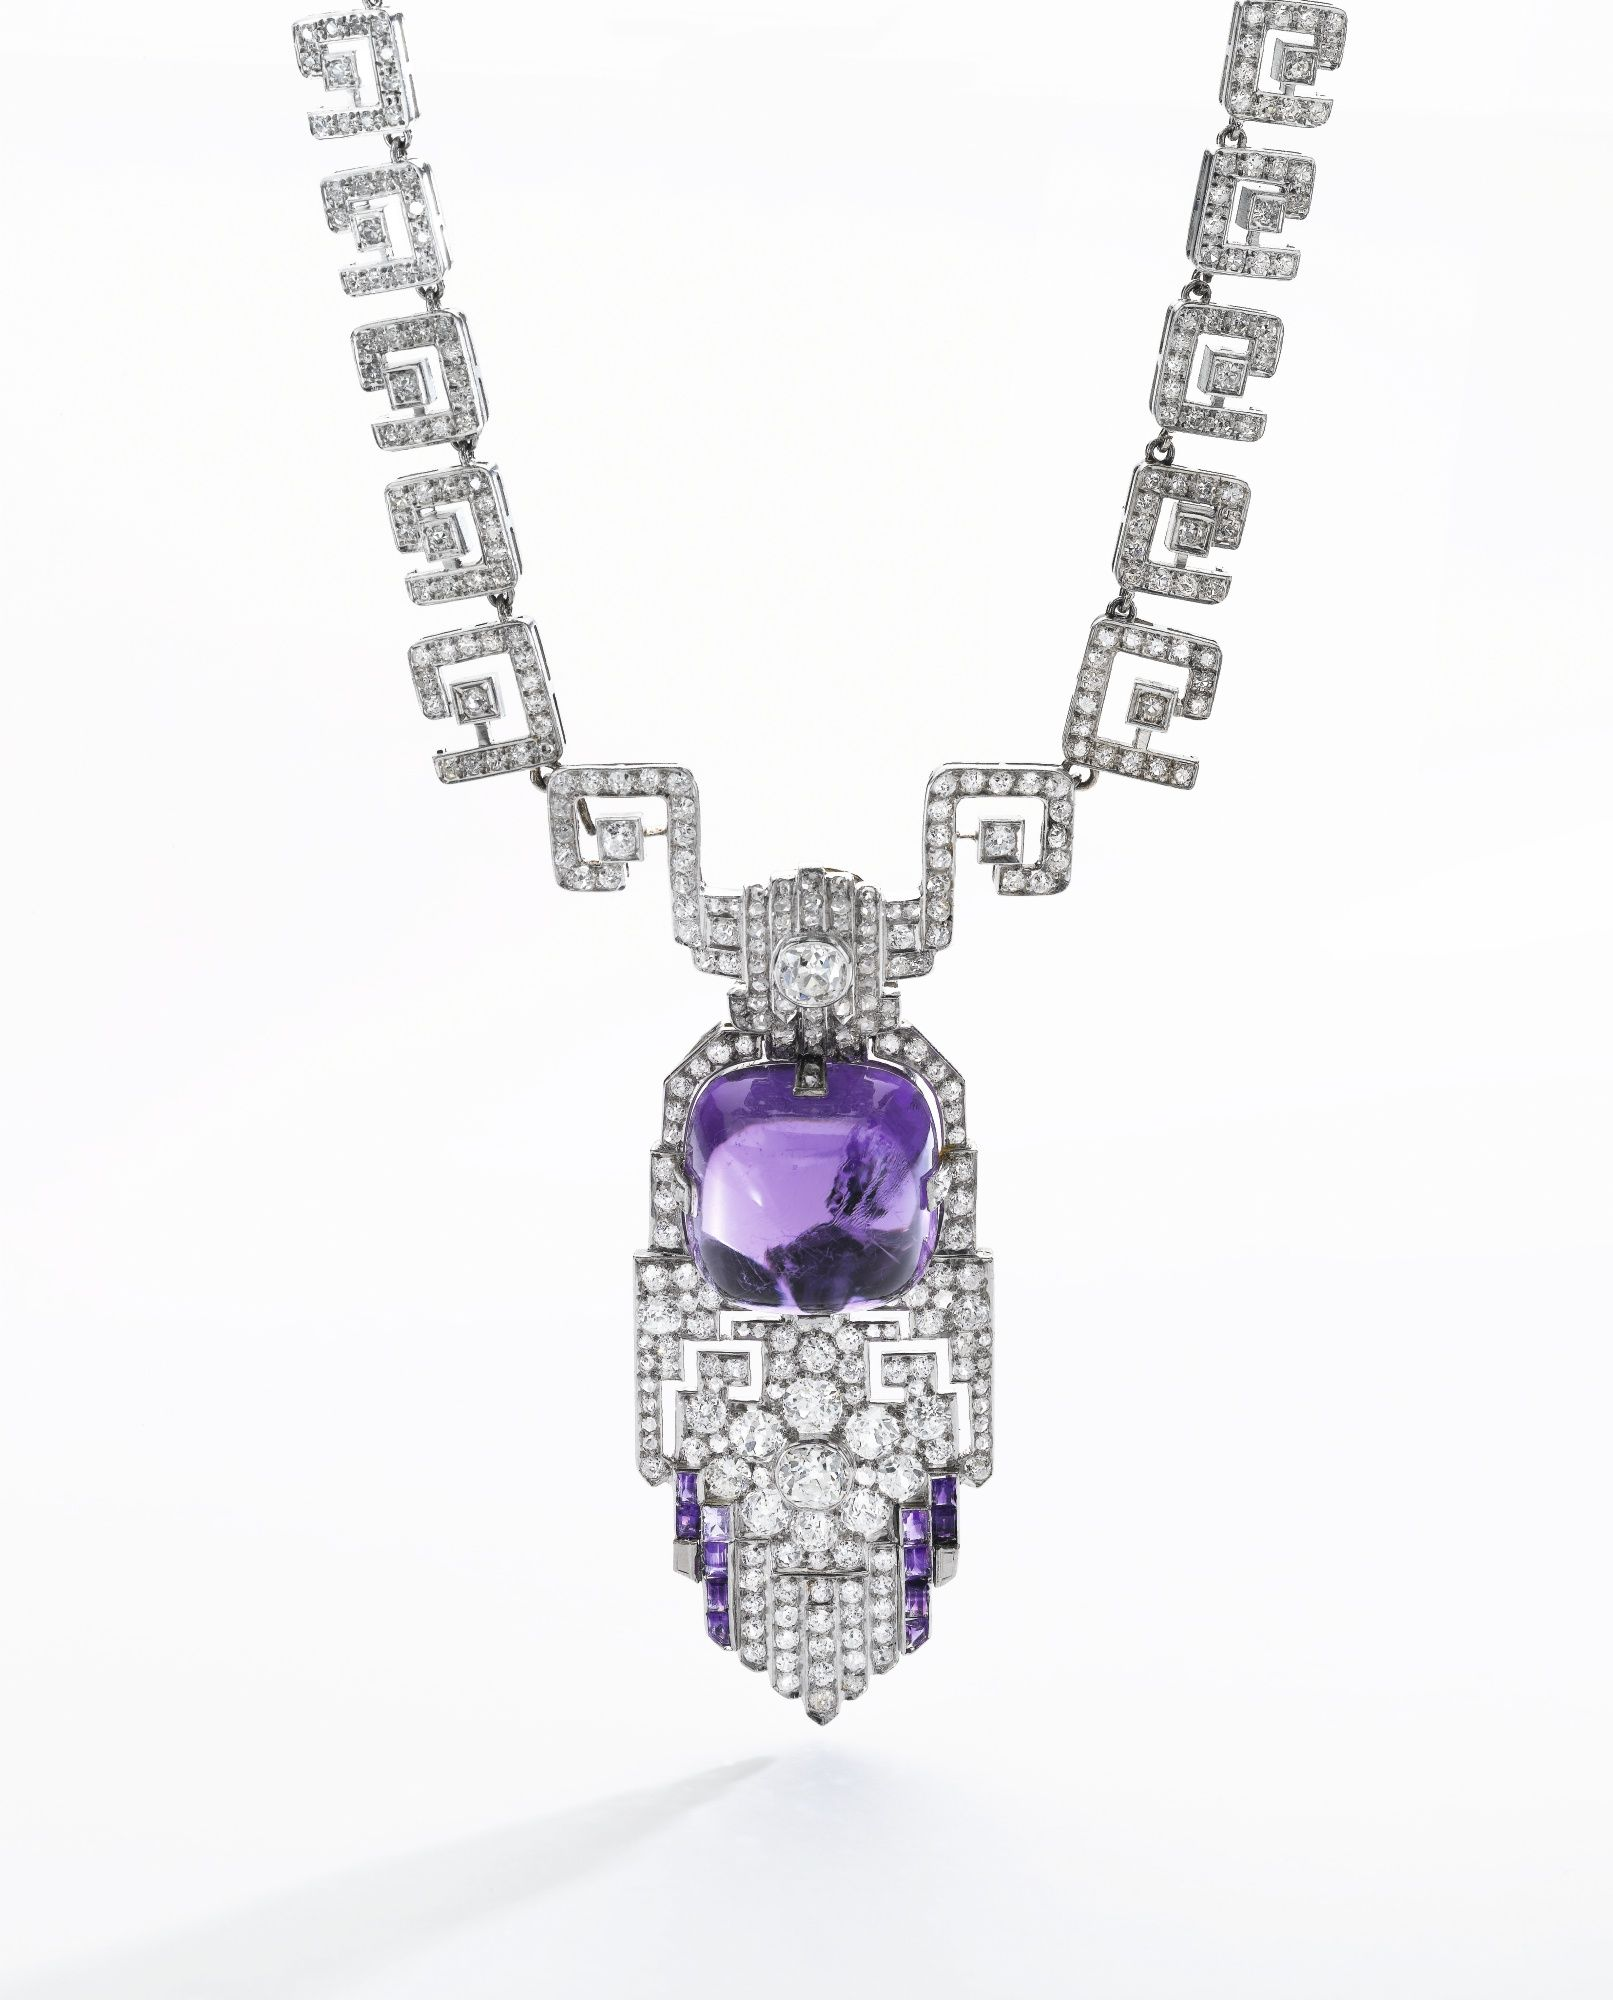 Amethyst and diamond pendant necklace designed as a chain of